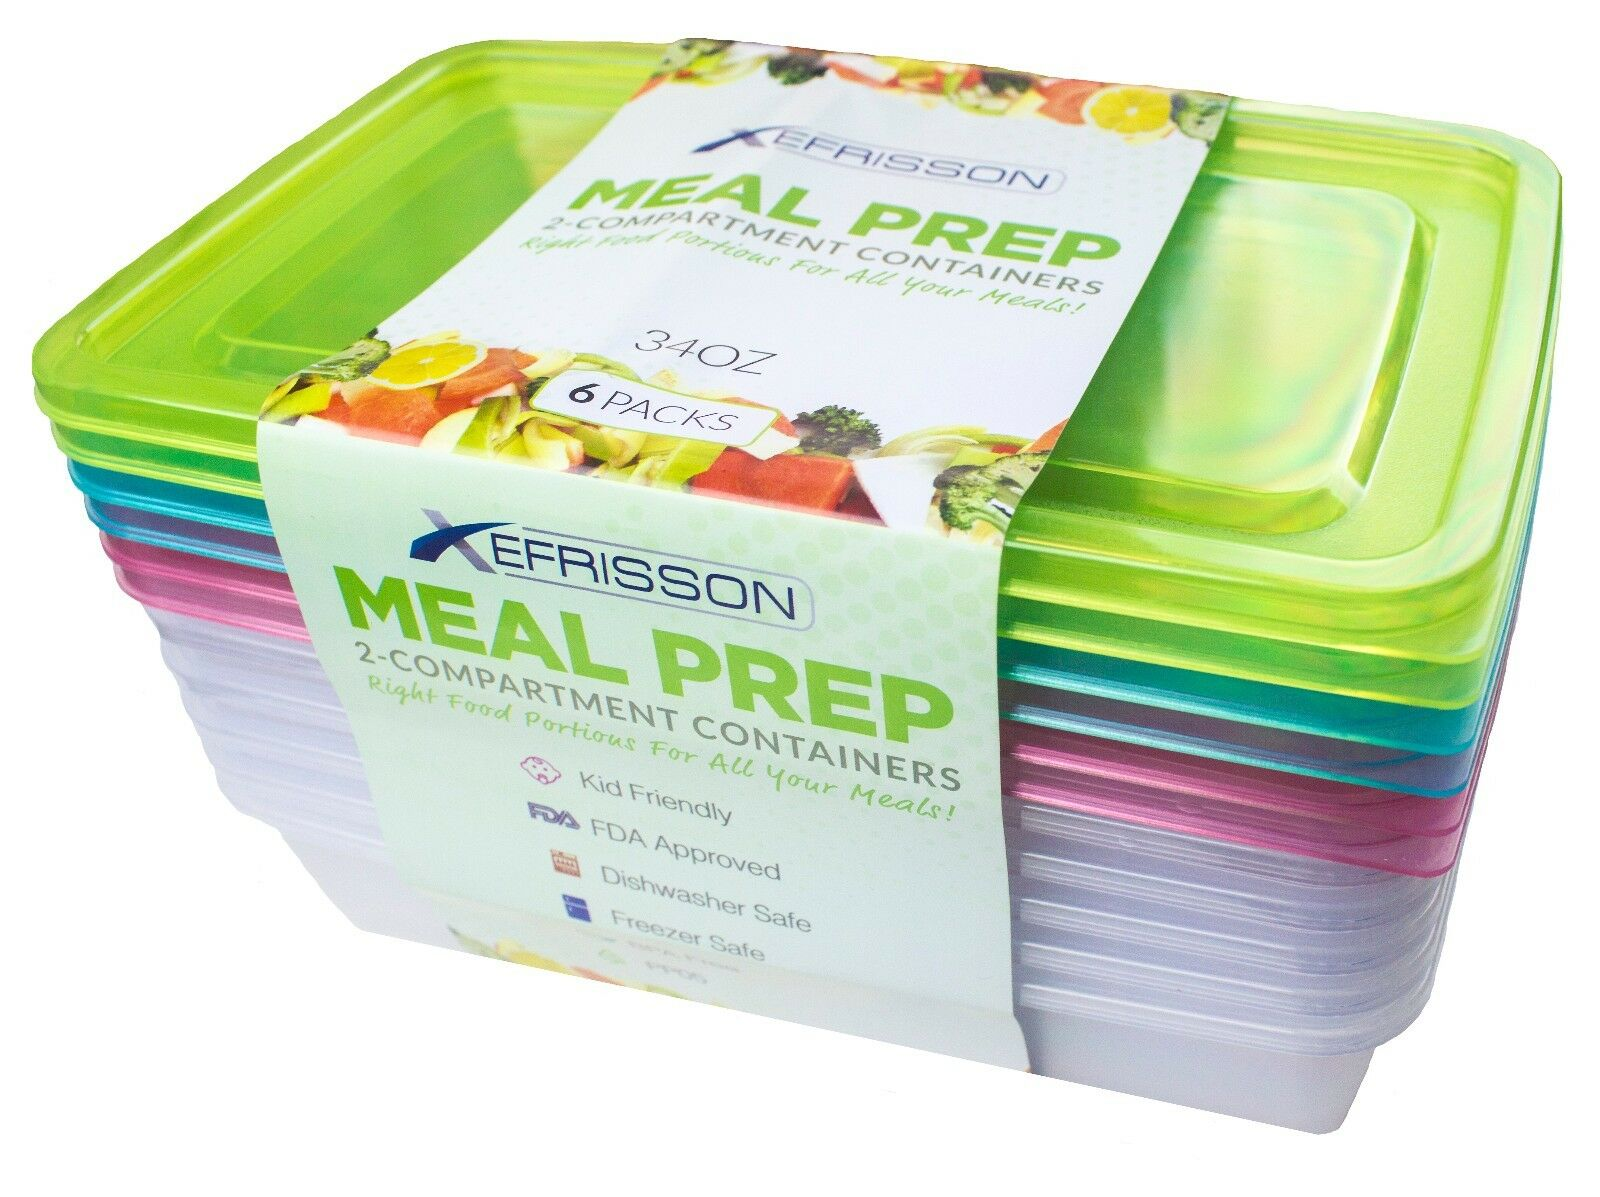 6-Pack Meal Prep Lunch Box Food Containers Set + Free Forks!!! 2